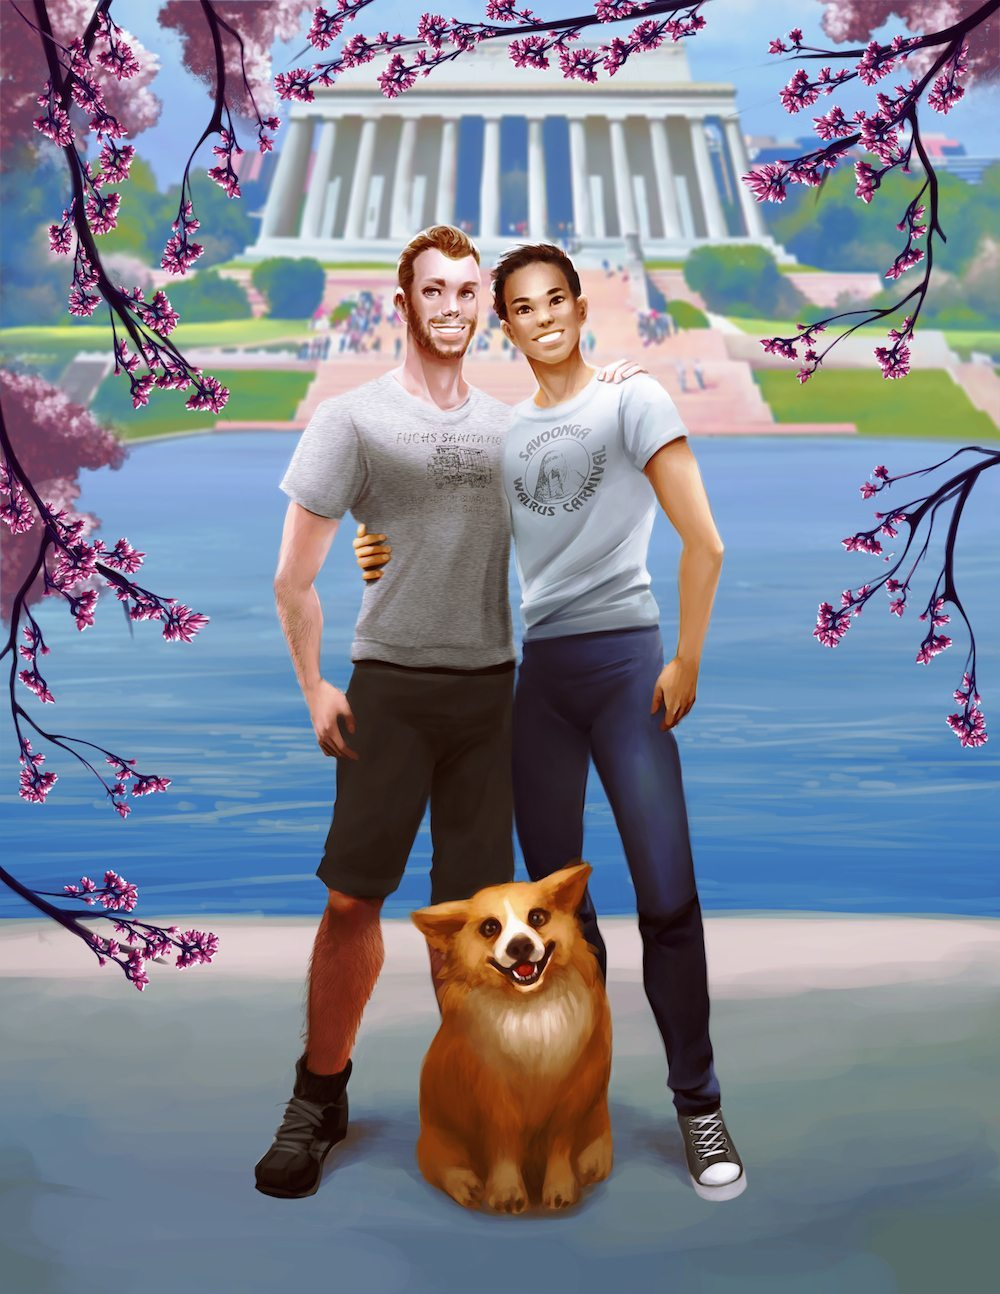 Cartoon Portrait of Michael Ben and Toby in DC by Nell Fallcard via ArtCorgi